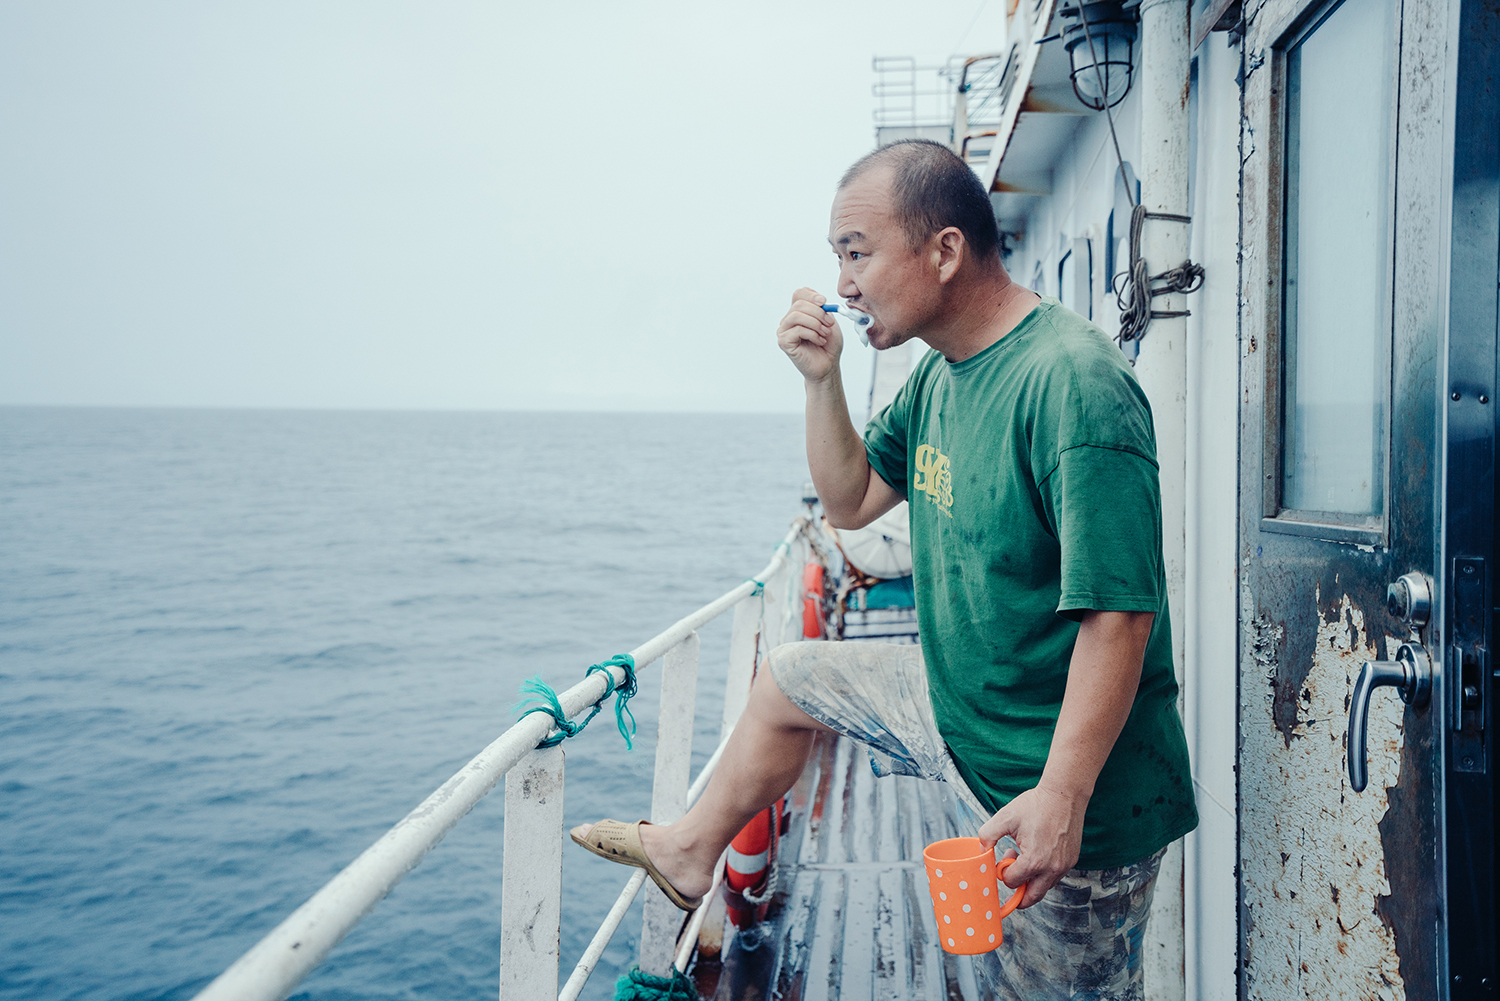 Jin, the 44-year-old Second Engineer, brushes his teeth on deck, July 22, 2016. Jin, who first came to work in Africa in 2008, is from Henan province. Captain Xu's ship left port in Dakar, Senegal on July 20, 2016. Industrial fishing vessels like this one typically spend 20-30 days on the water at a stretch.